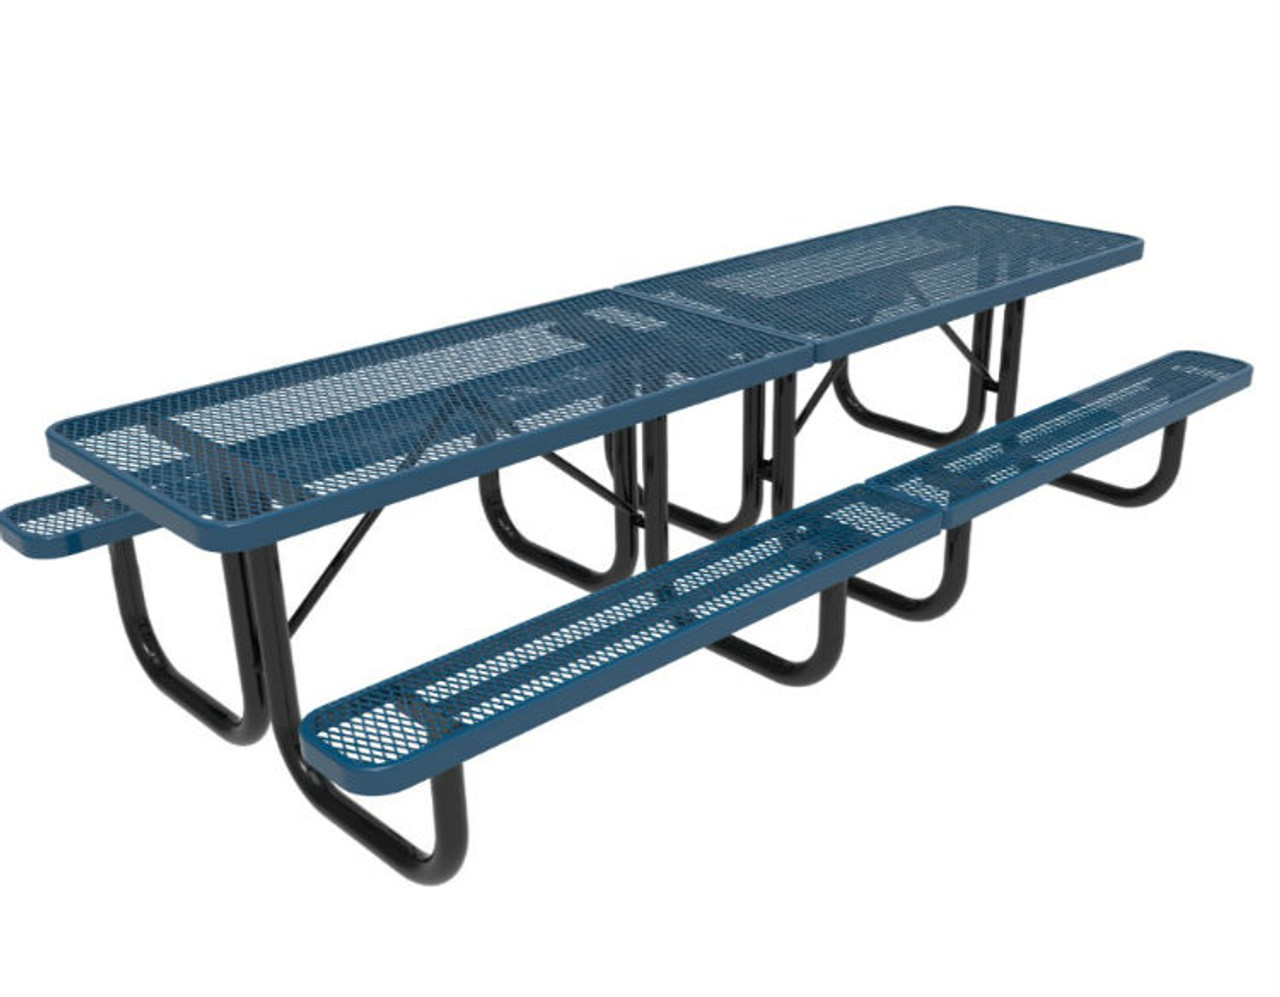 10' Expanded Metal Picnic Table